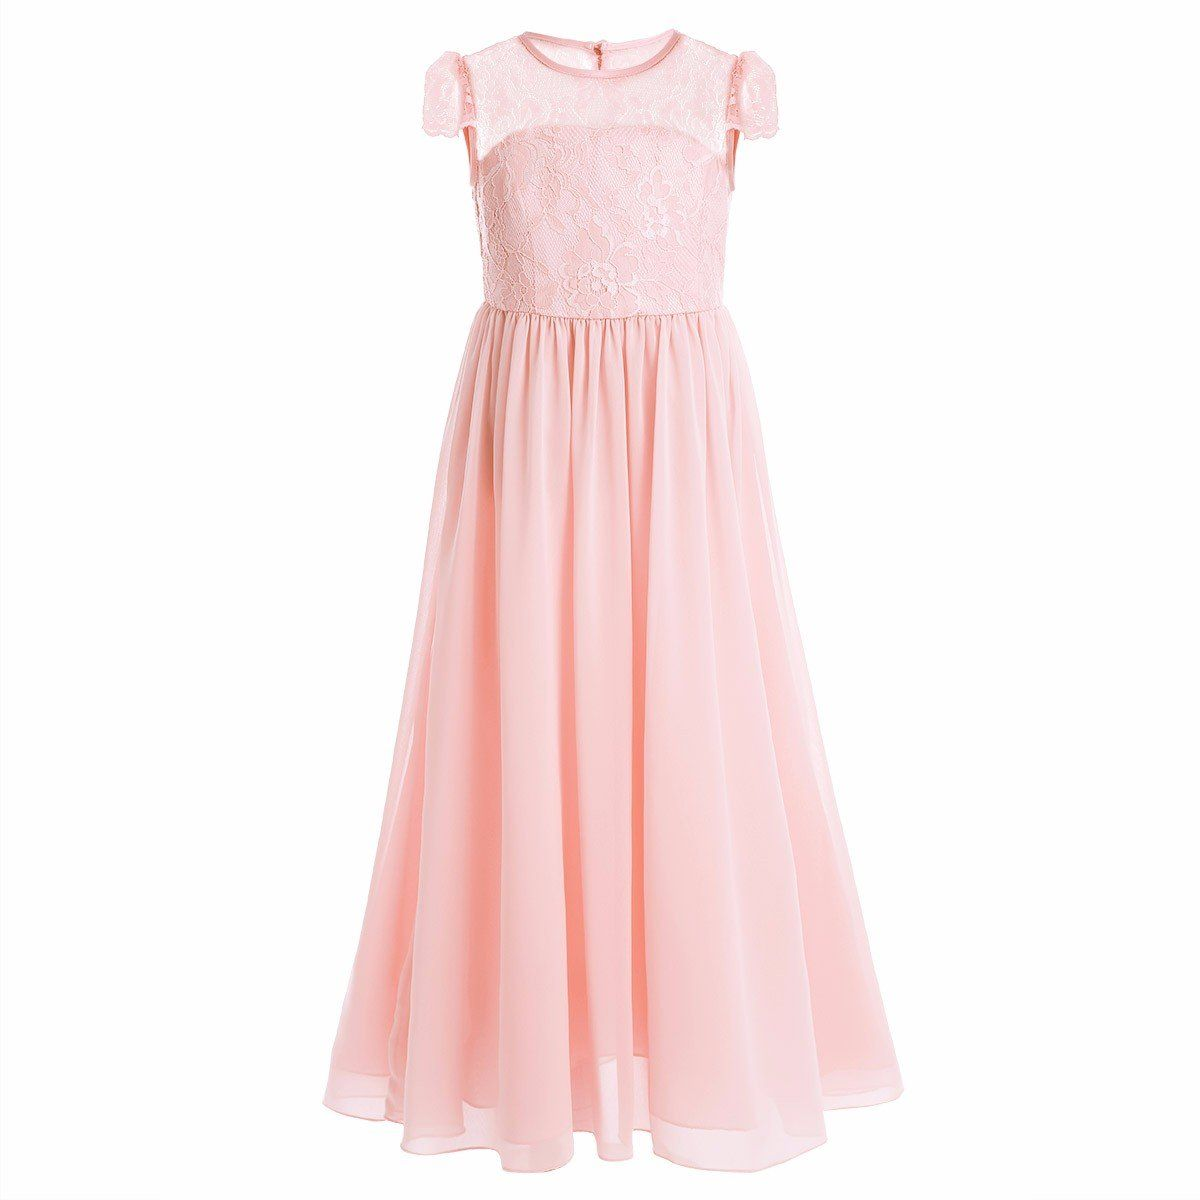 2a38417bab3 FEESHOW Big Girls Floral Lace Dress Chiffon Junior Bridesmaid Wedding Party  Graduation Pearl 4. Kids